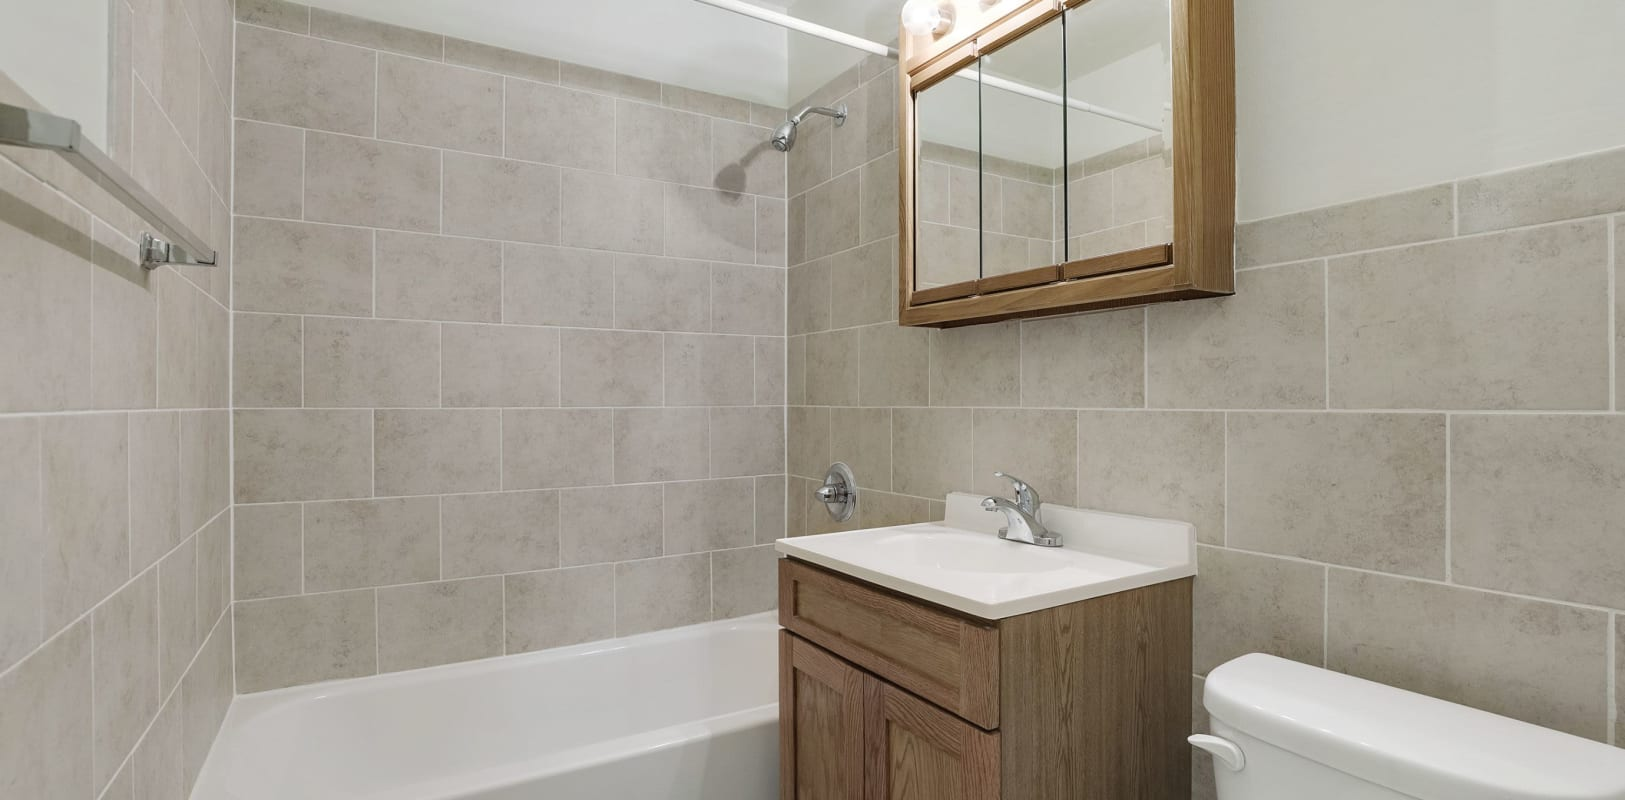 Clean bathroom at Nieuw Amsterdam Village in South Amboy, New Jersey